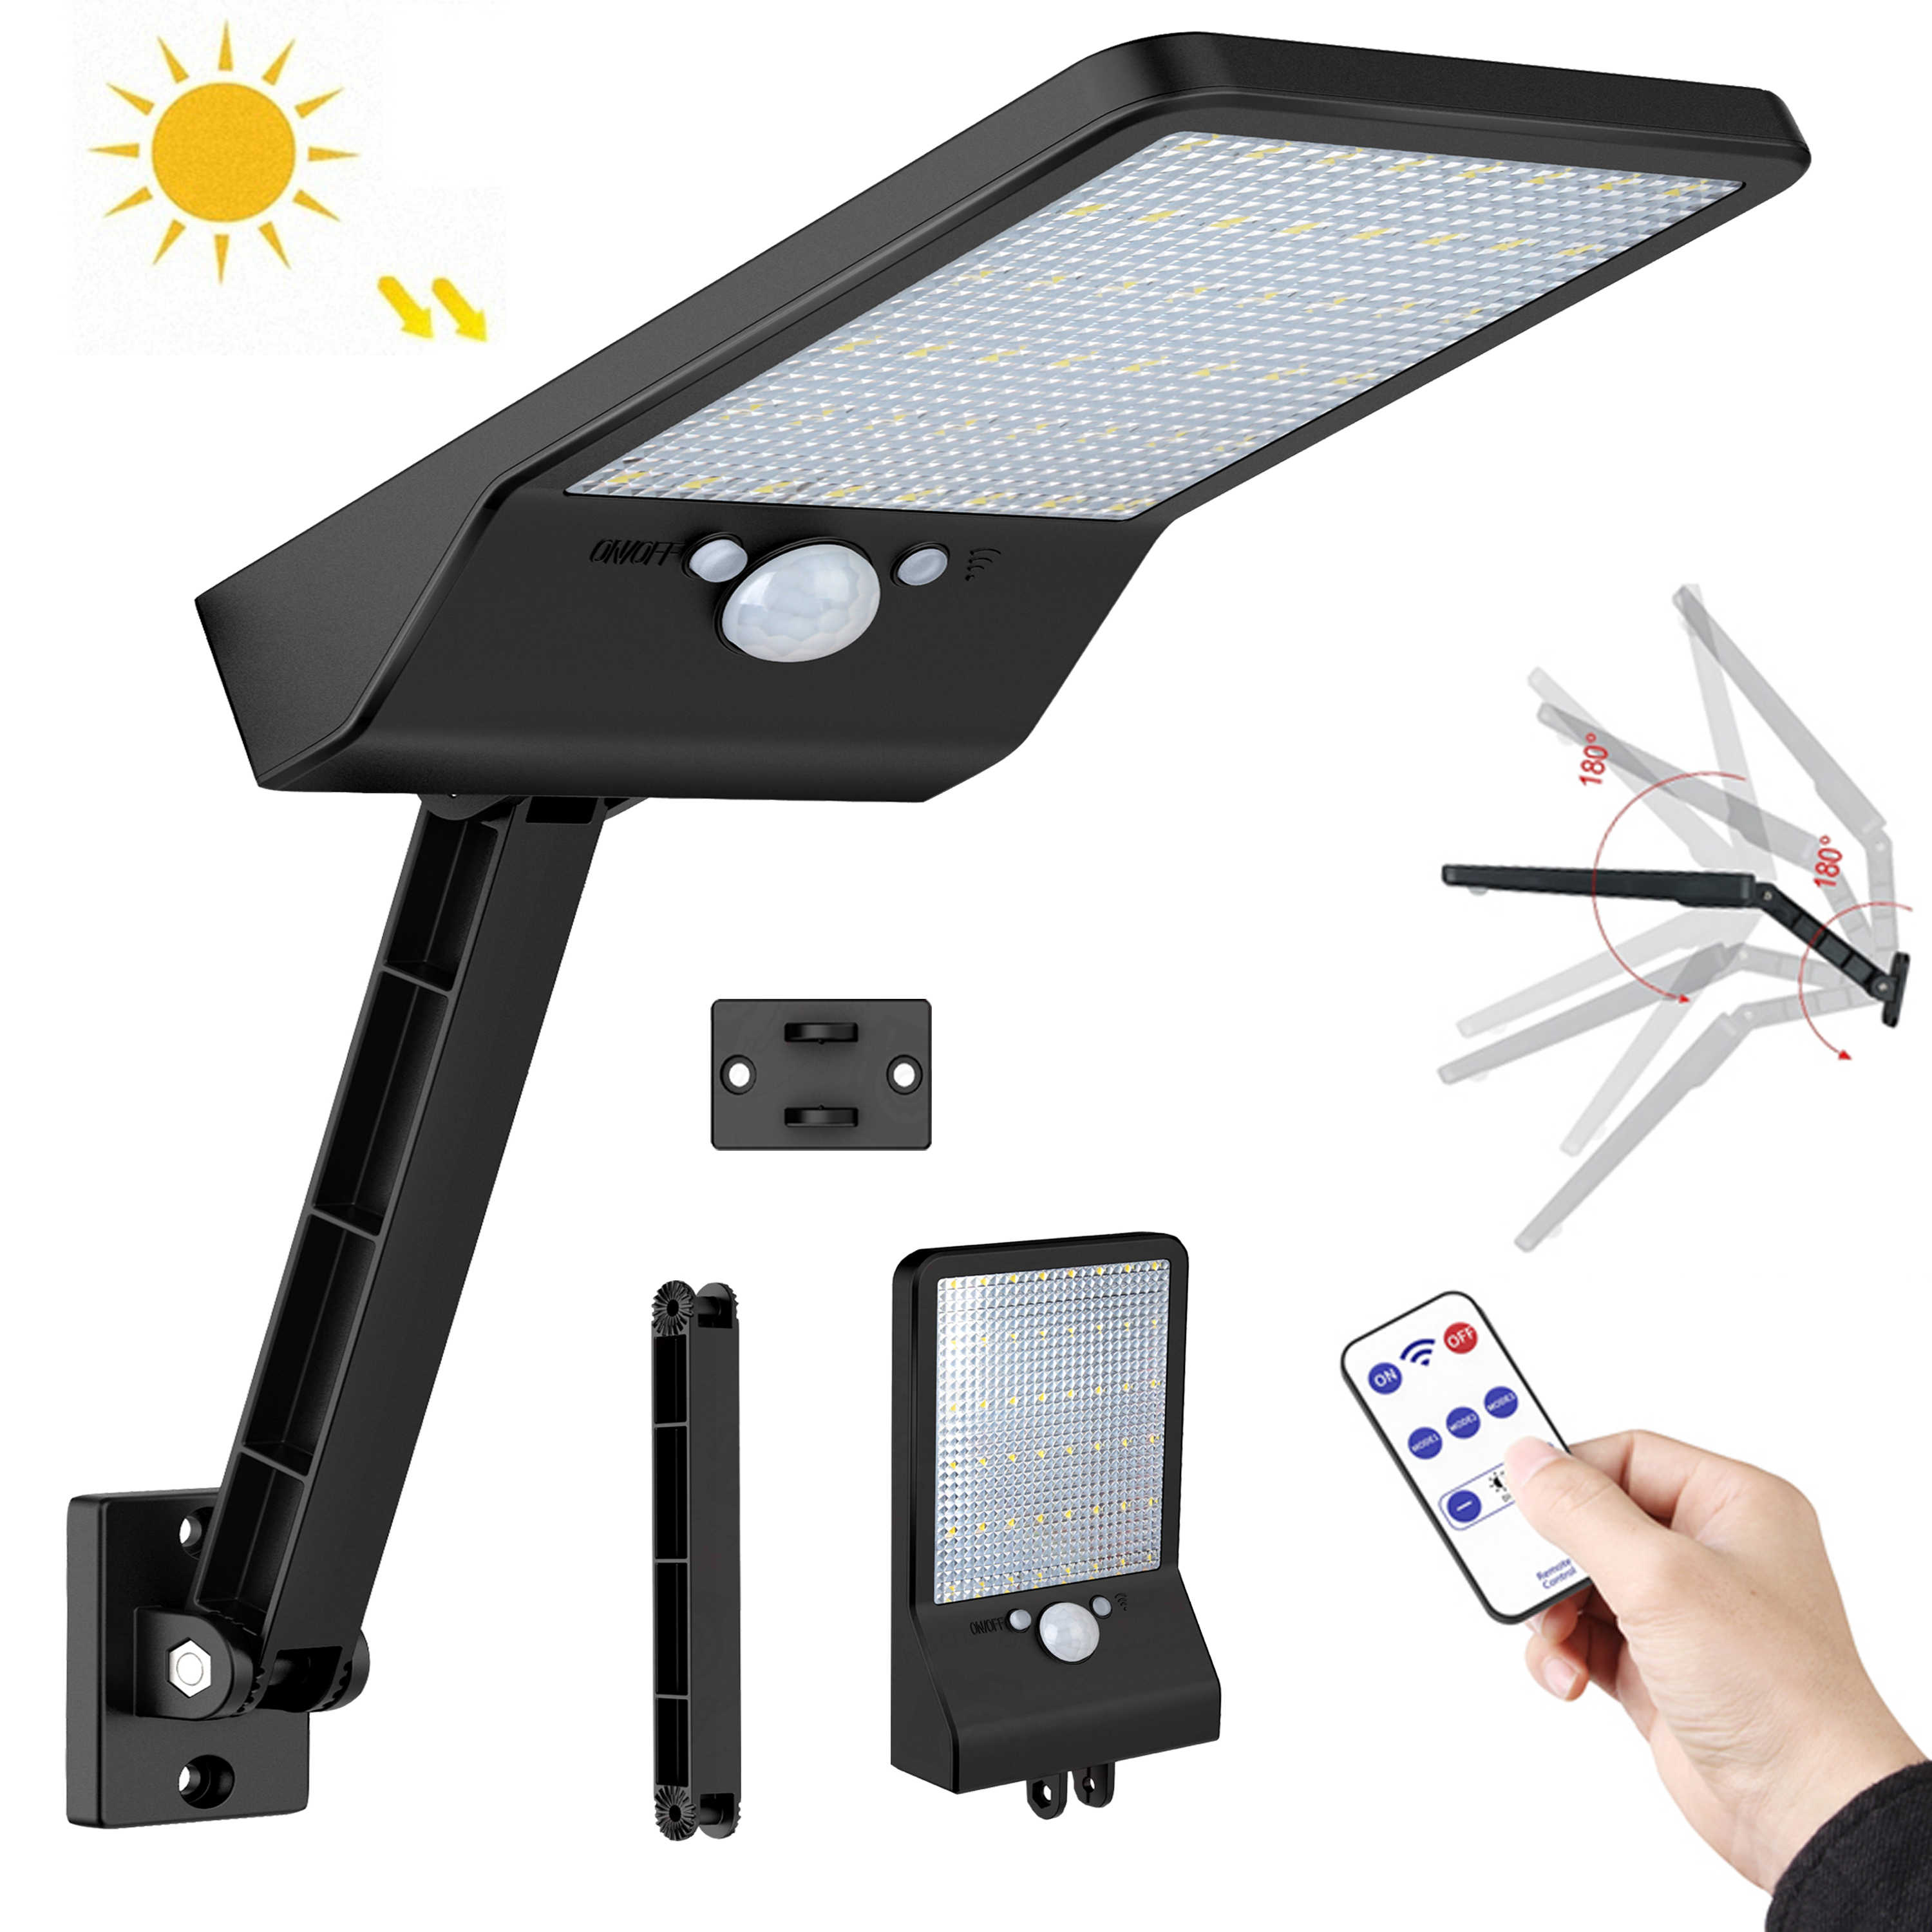 Newest 500 LM 48LED Solar Power Street Light PIR Motion Sensor wall Lamp Outdoo remote control rotate bracket solar street light